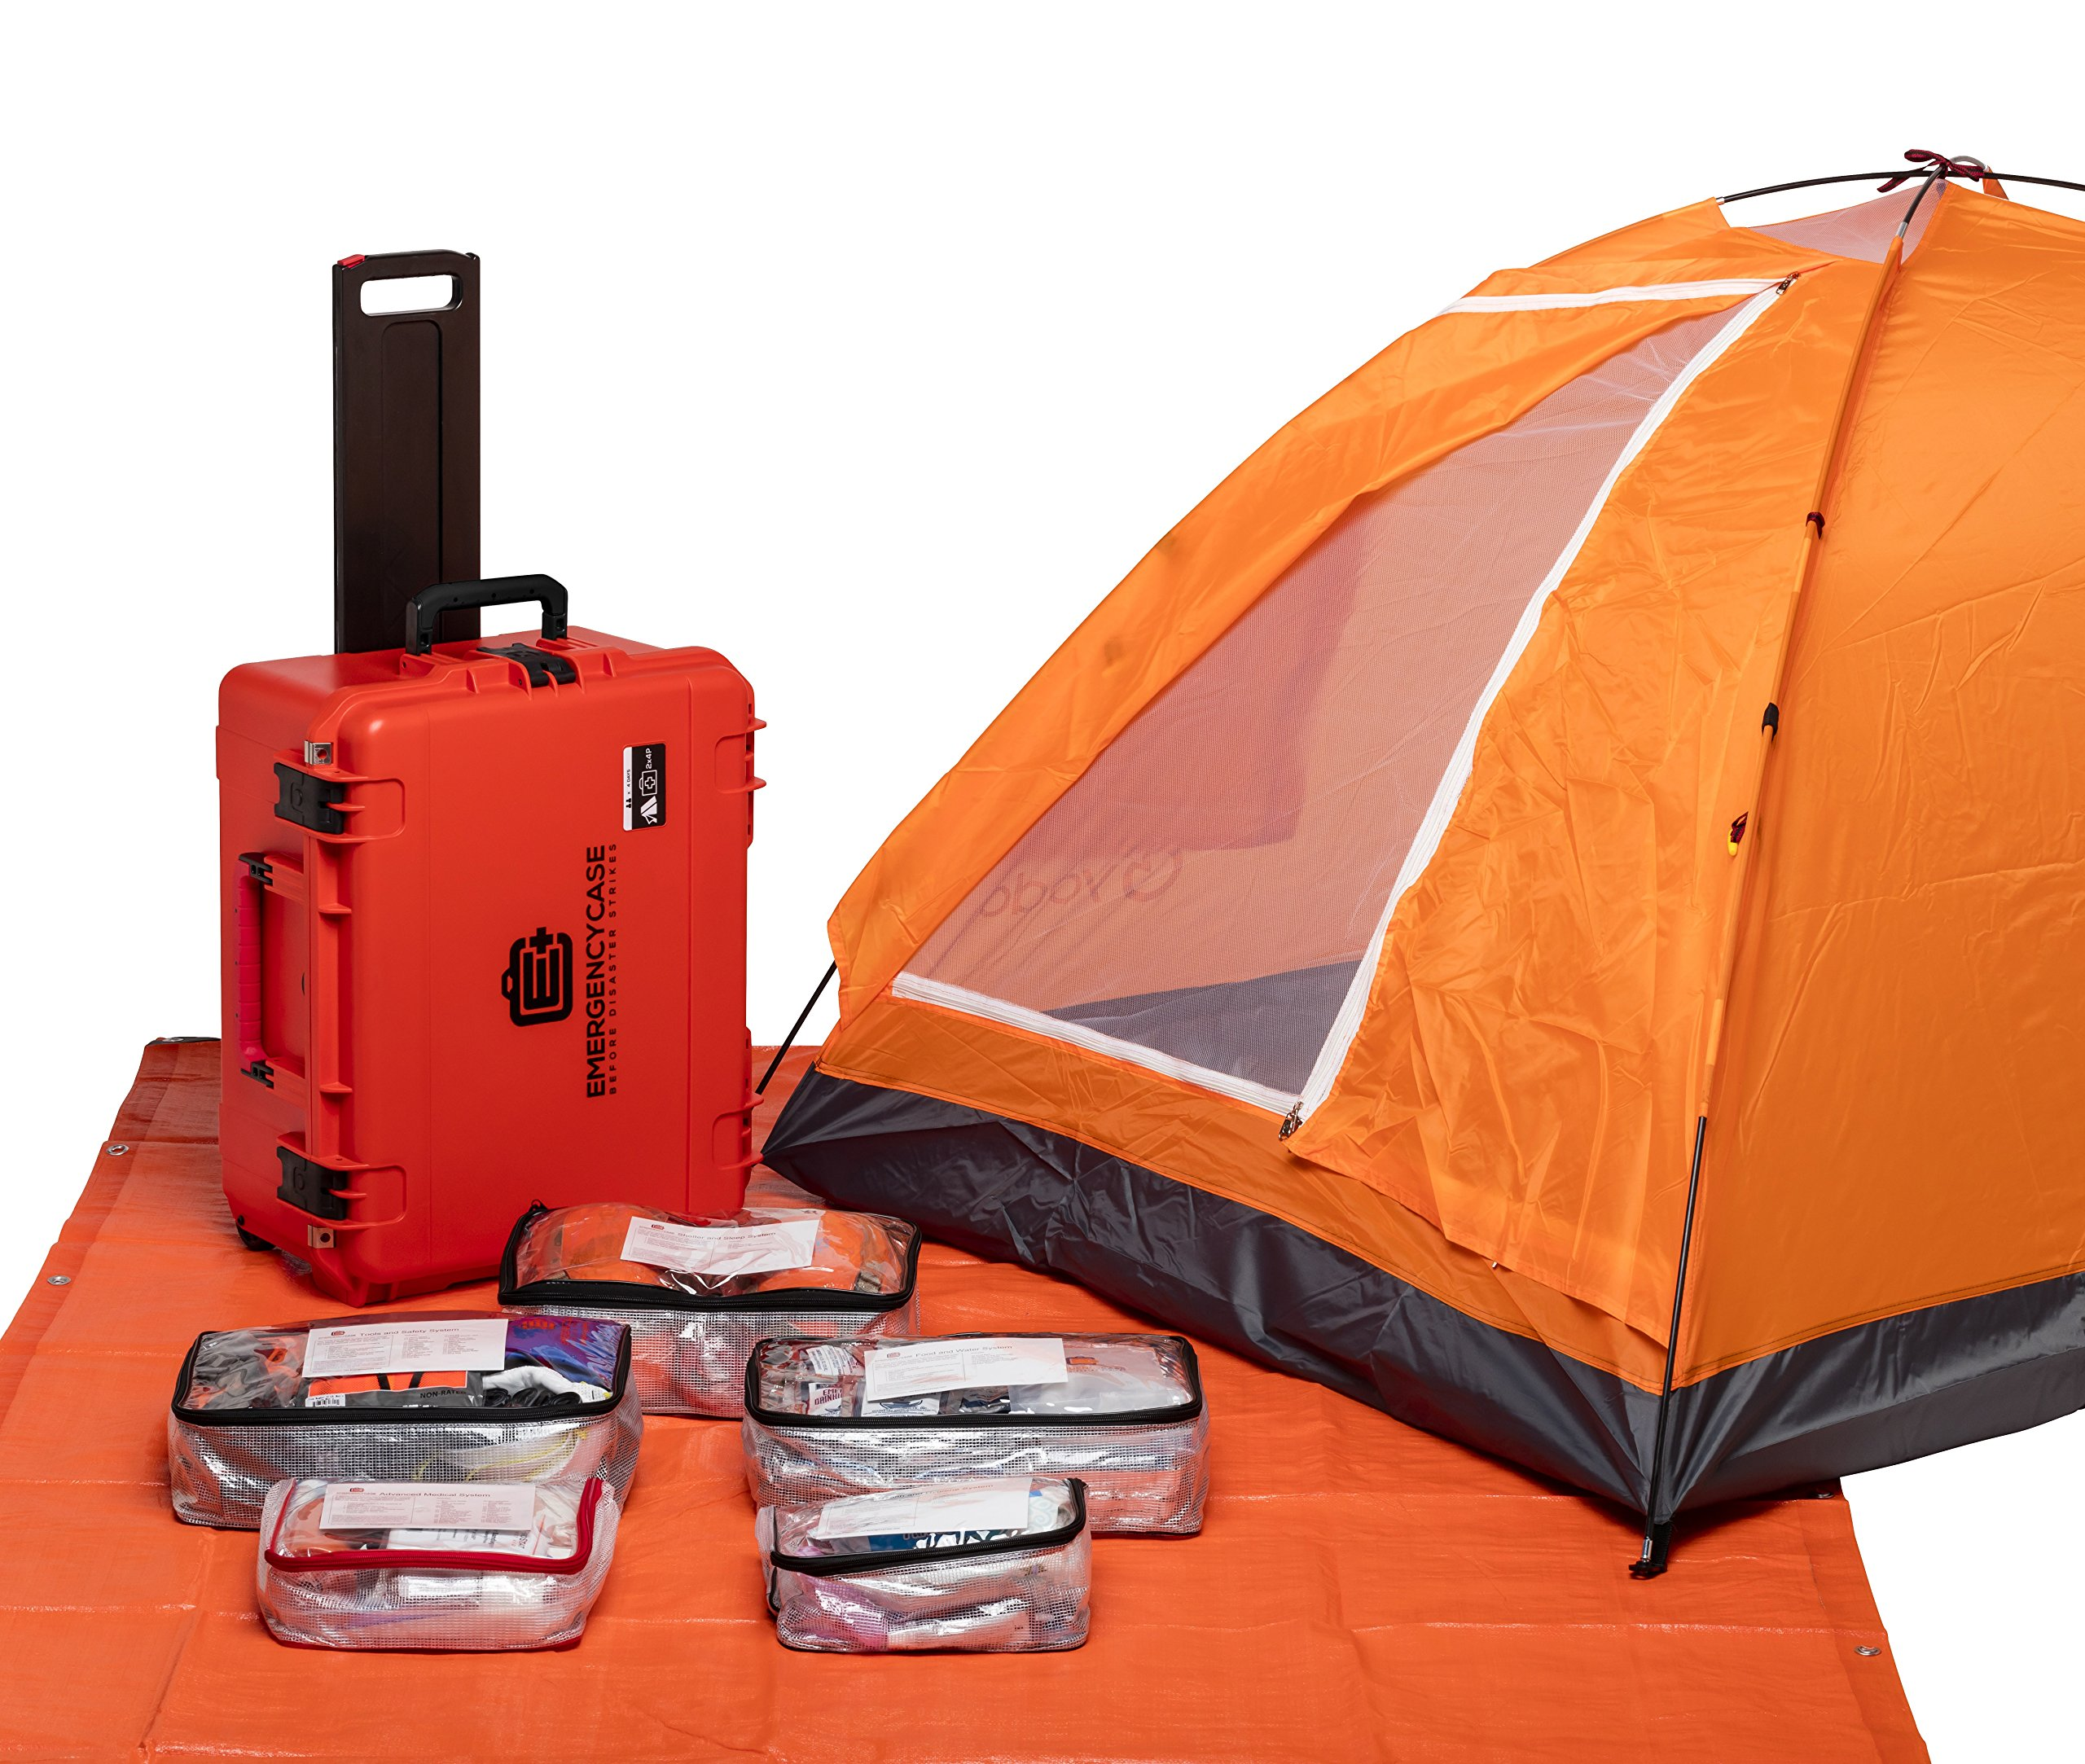 Emergency Case - Premium Family Survival Kit - 2 Person 4 Days for Earthquakes, Hurricanes, Floods, Tornadoes, Wildfires by E C Emergency Case Before Disaster Strikes